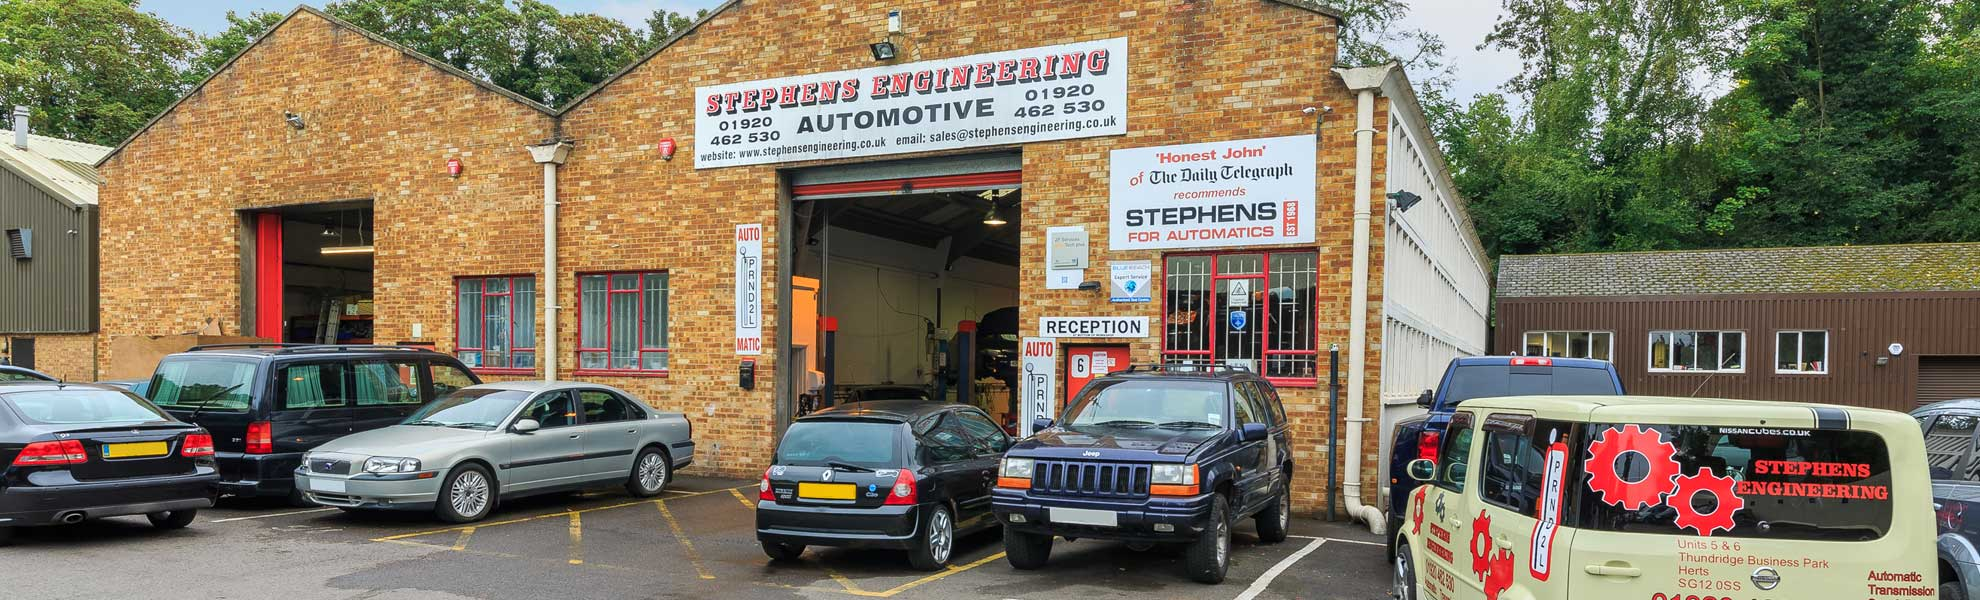 Automatic gearbox repairs